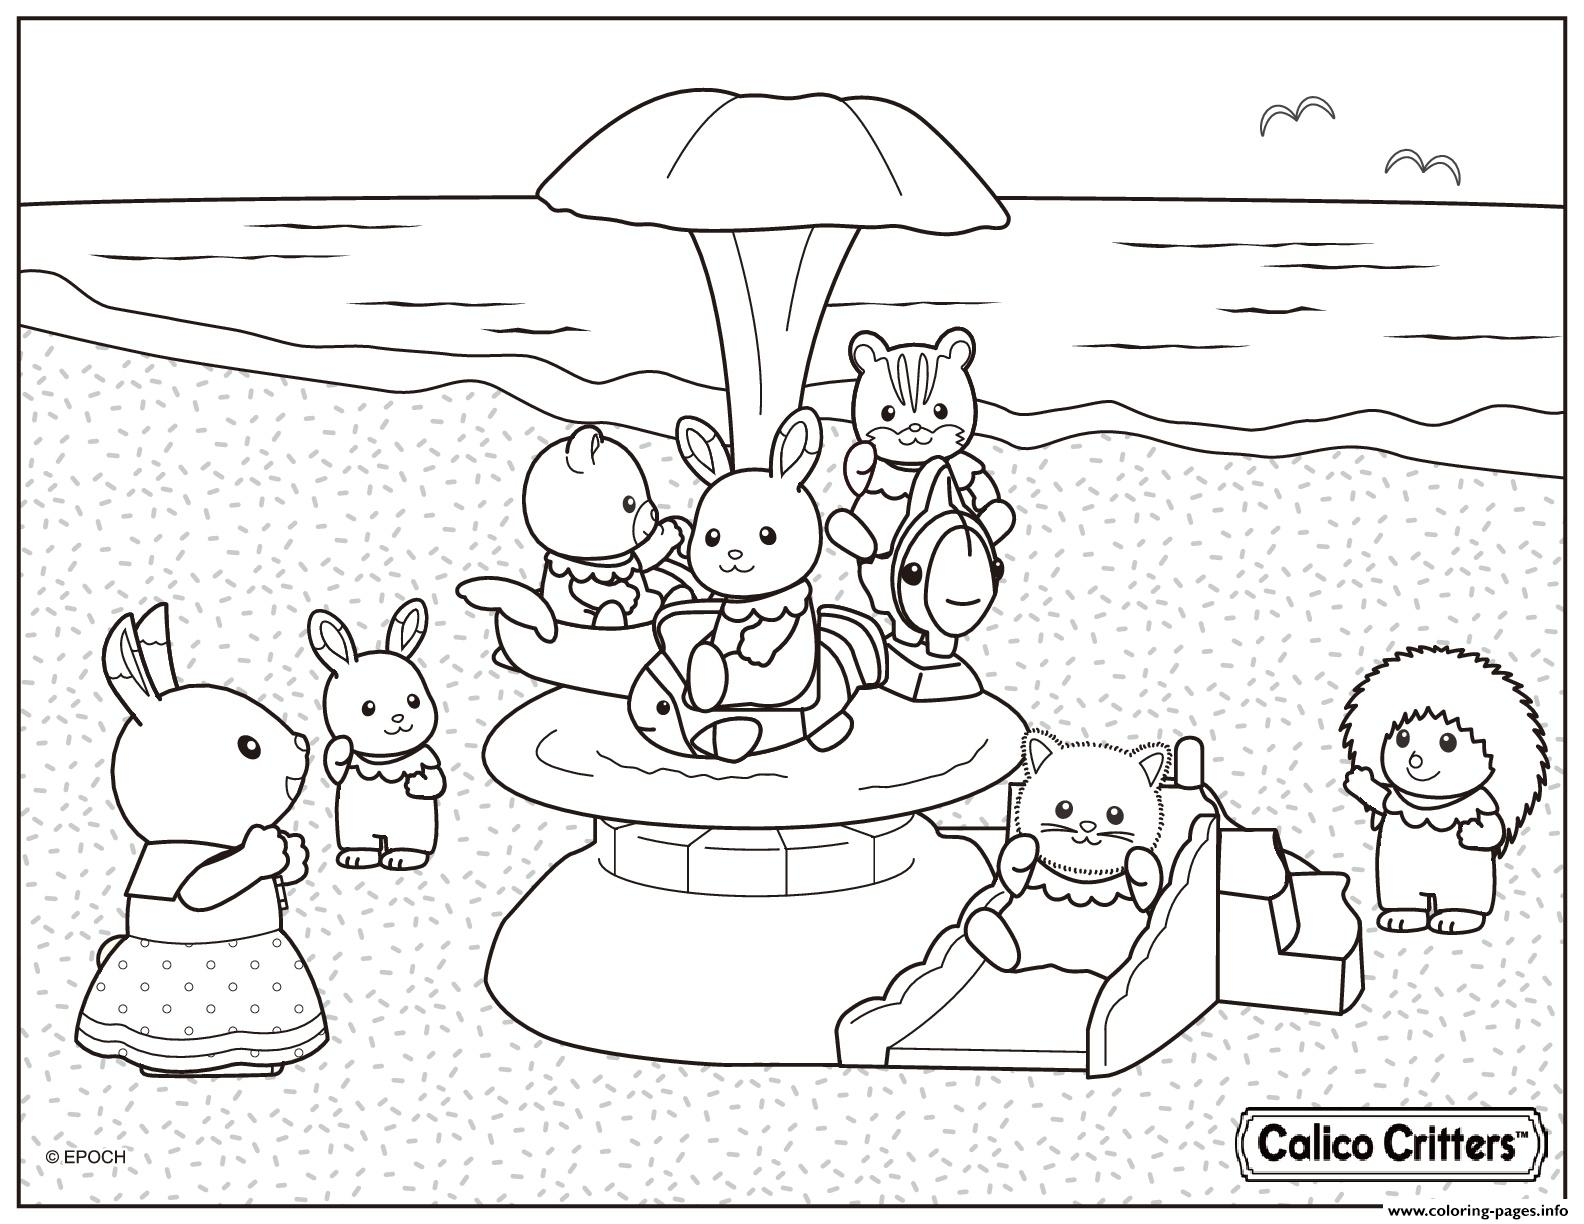 Calico Critters In The Beach For Vacation Coloring Pages ...